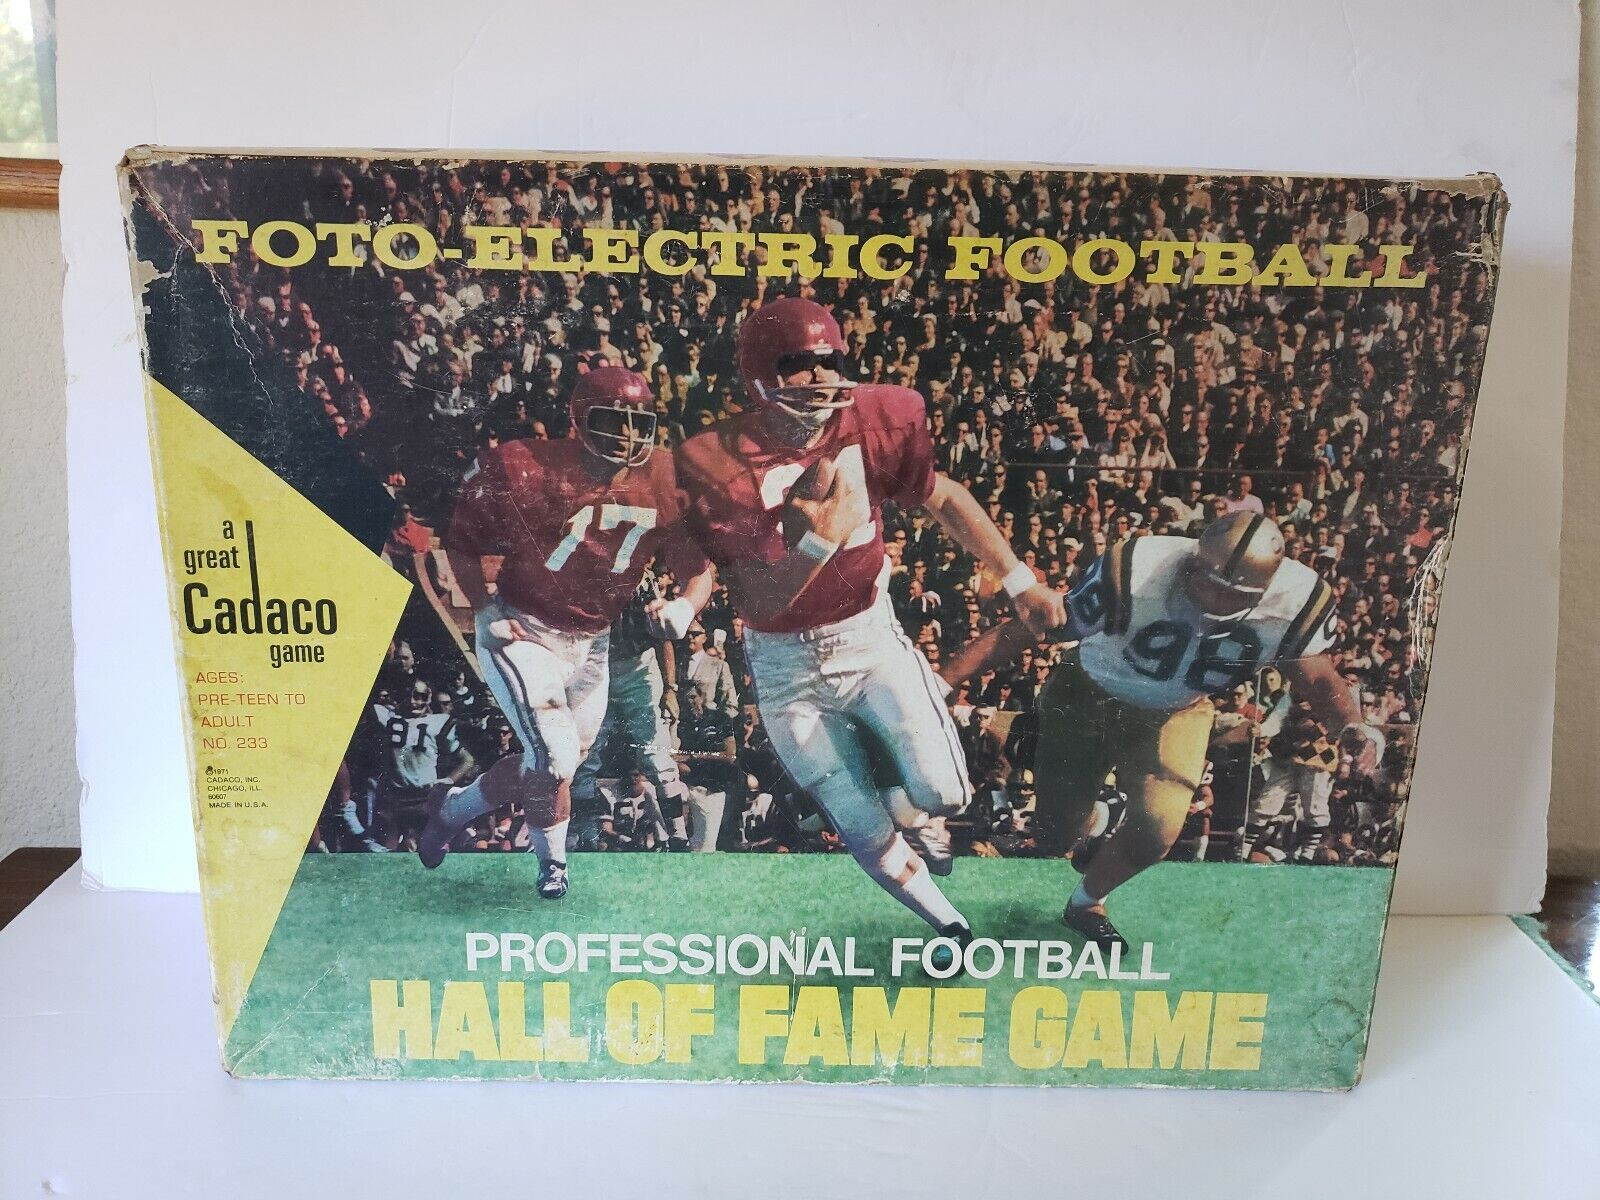 1971 Foto-Electric Professional Football Hall of Fame Game Cadaco With Rules